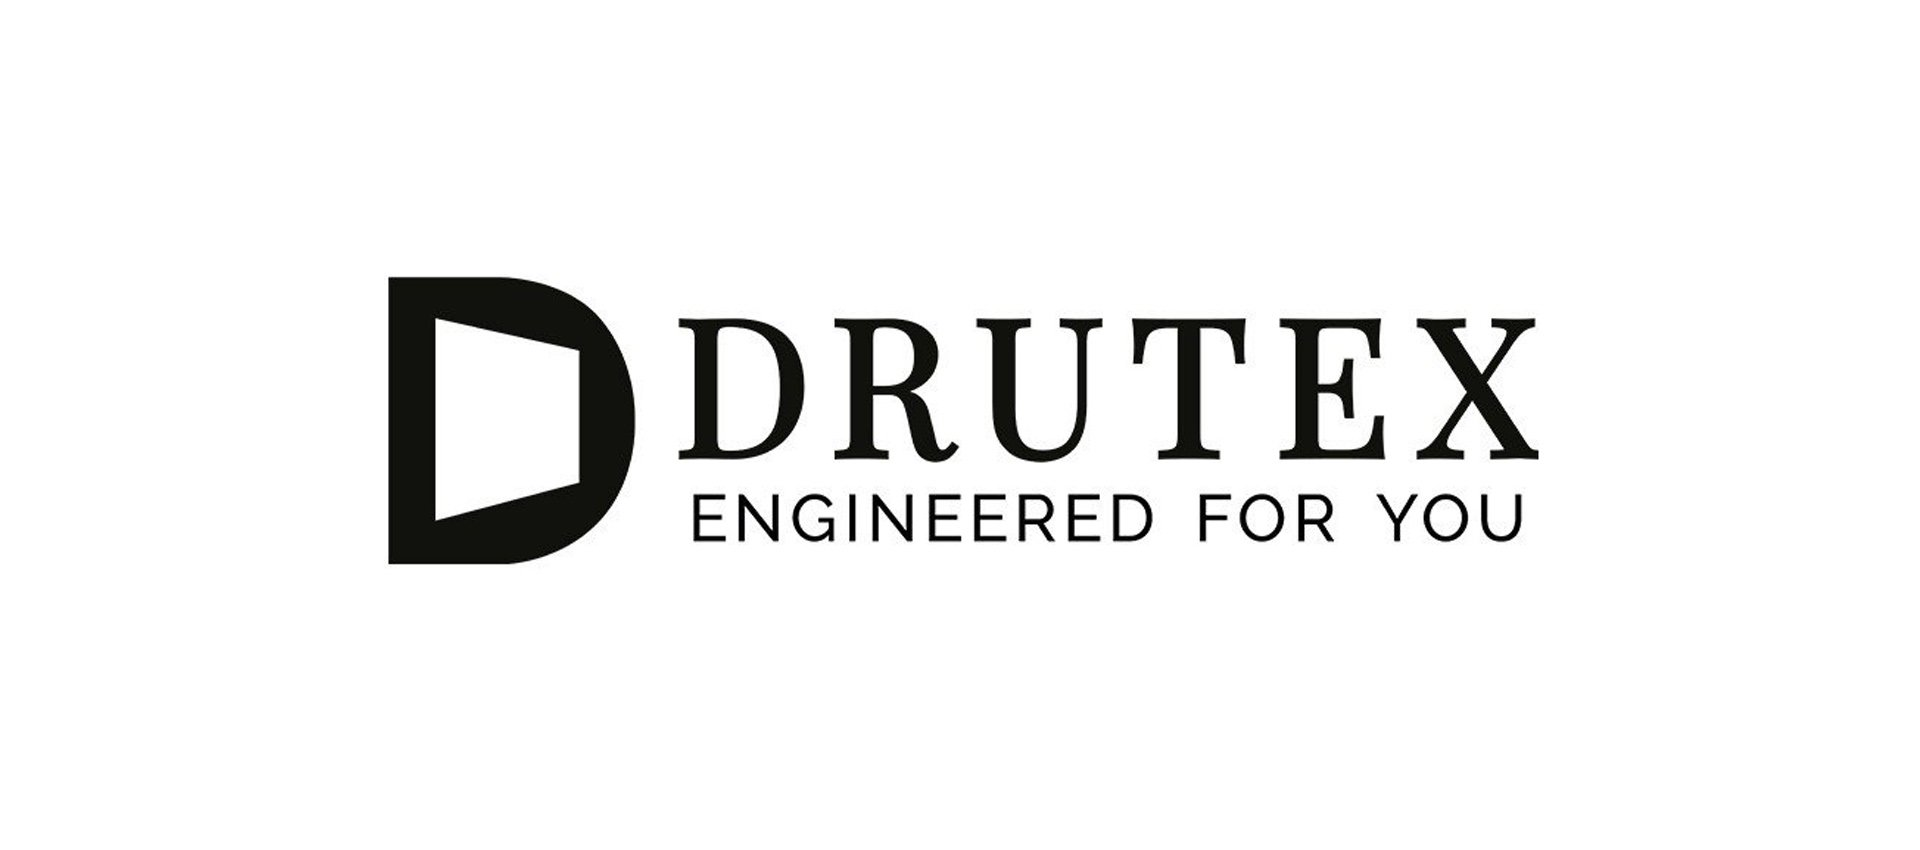 DRUTEX refreshes its image and presents a new logo